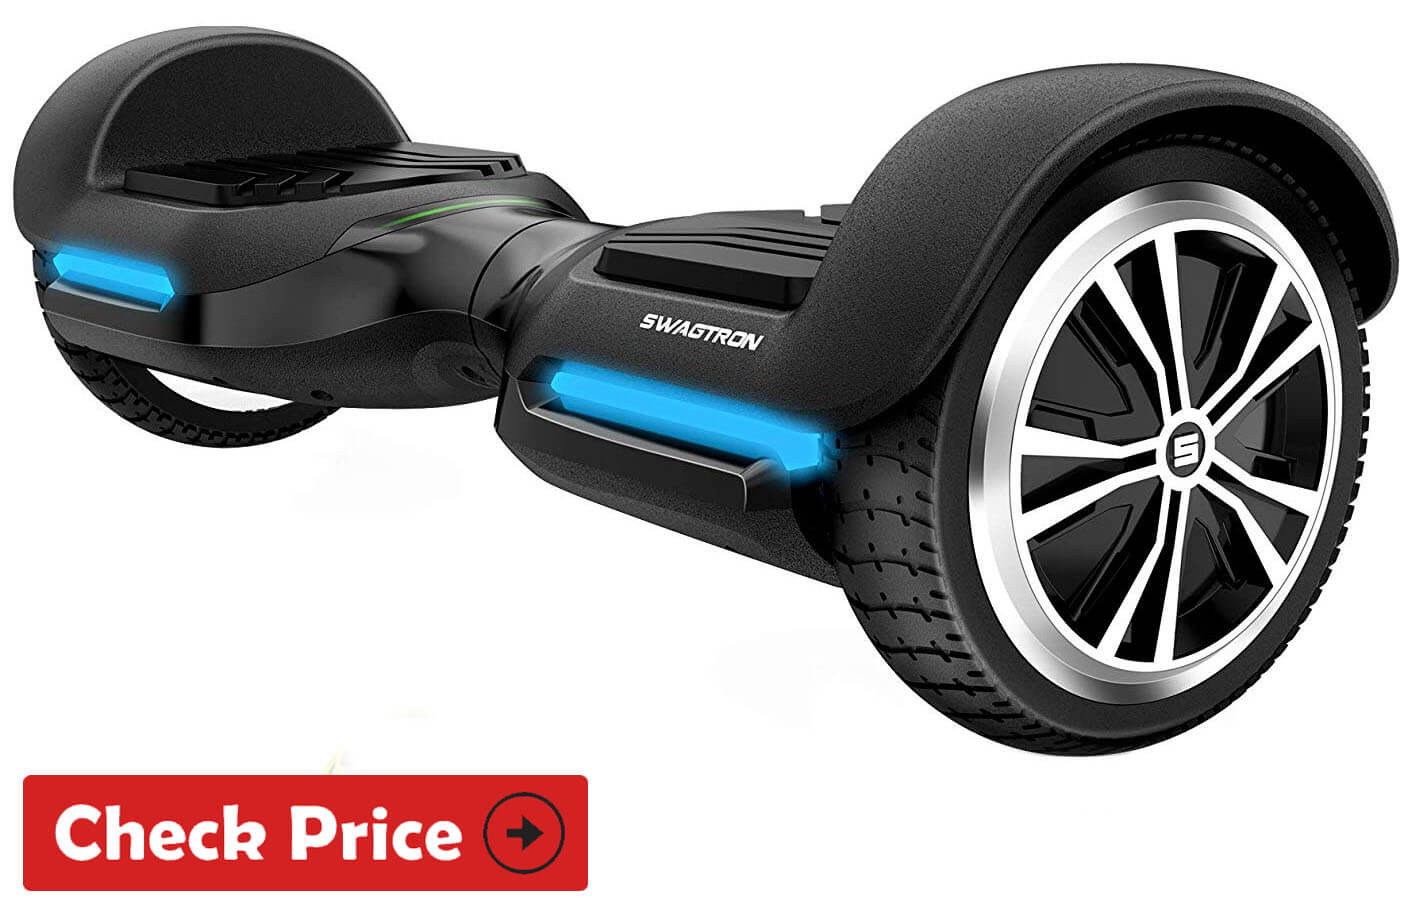 Swagtron T580 hoverboard under 200